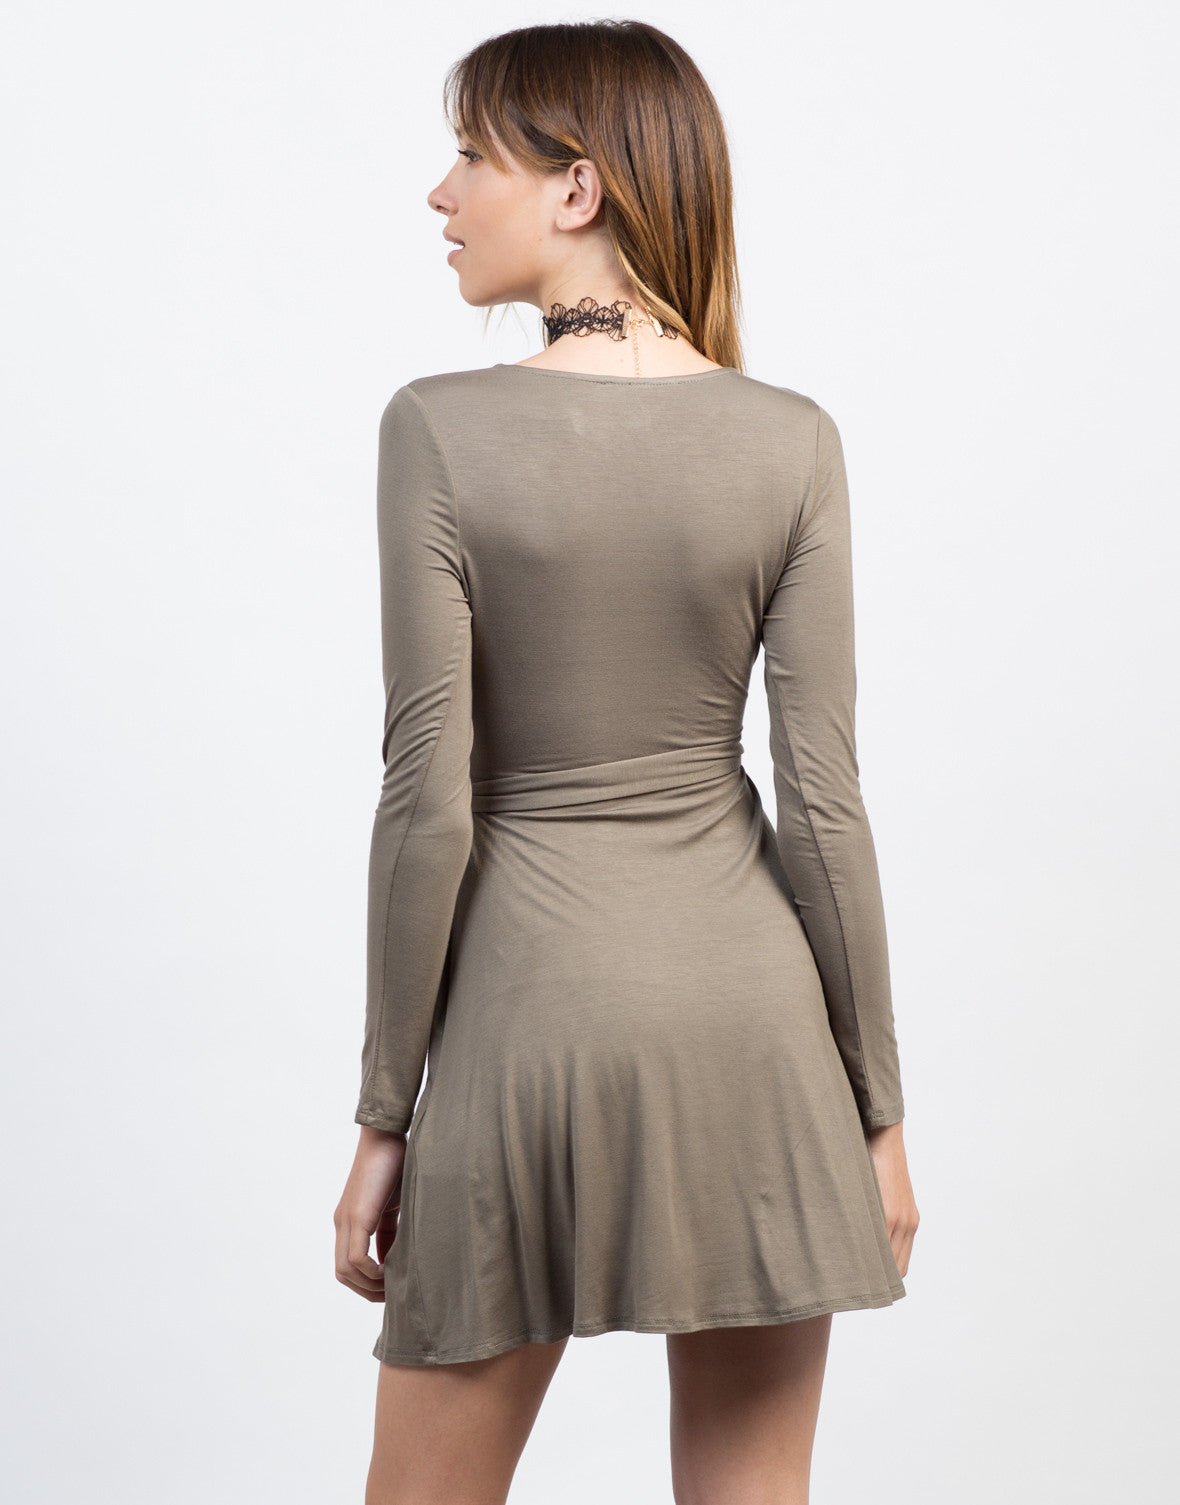 Back View of All Wrapped Up L/S Dress